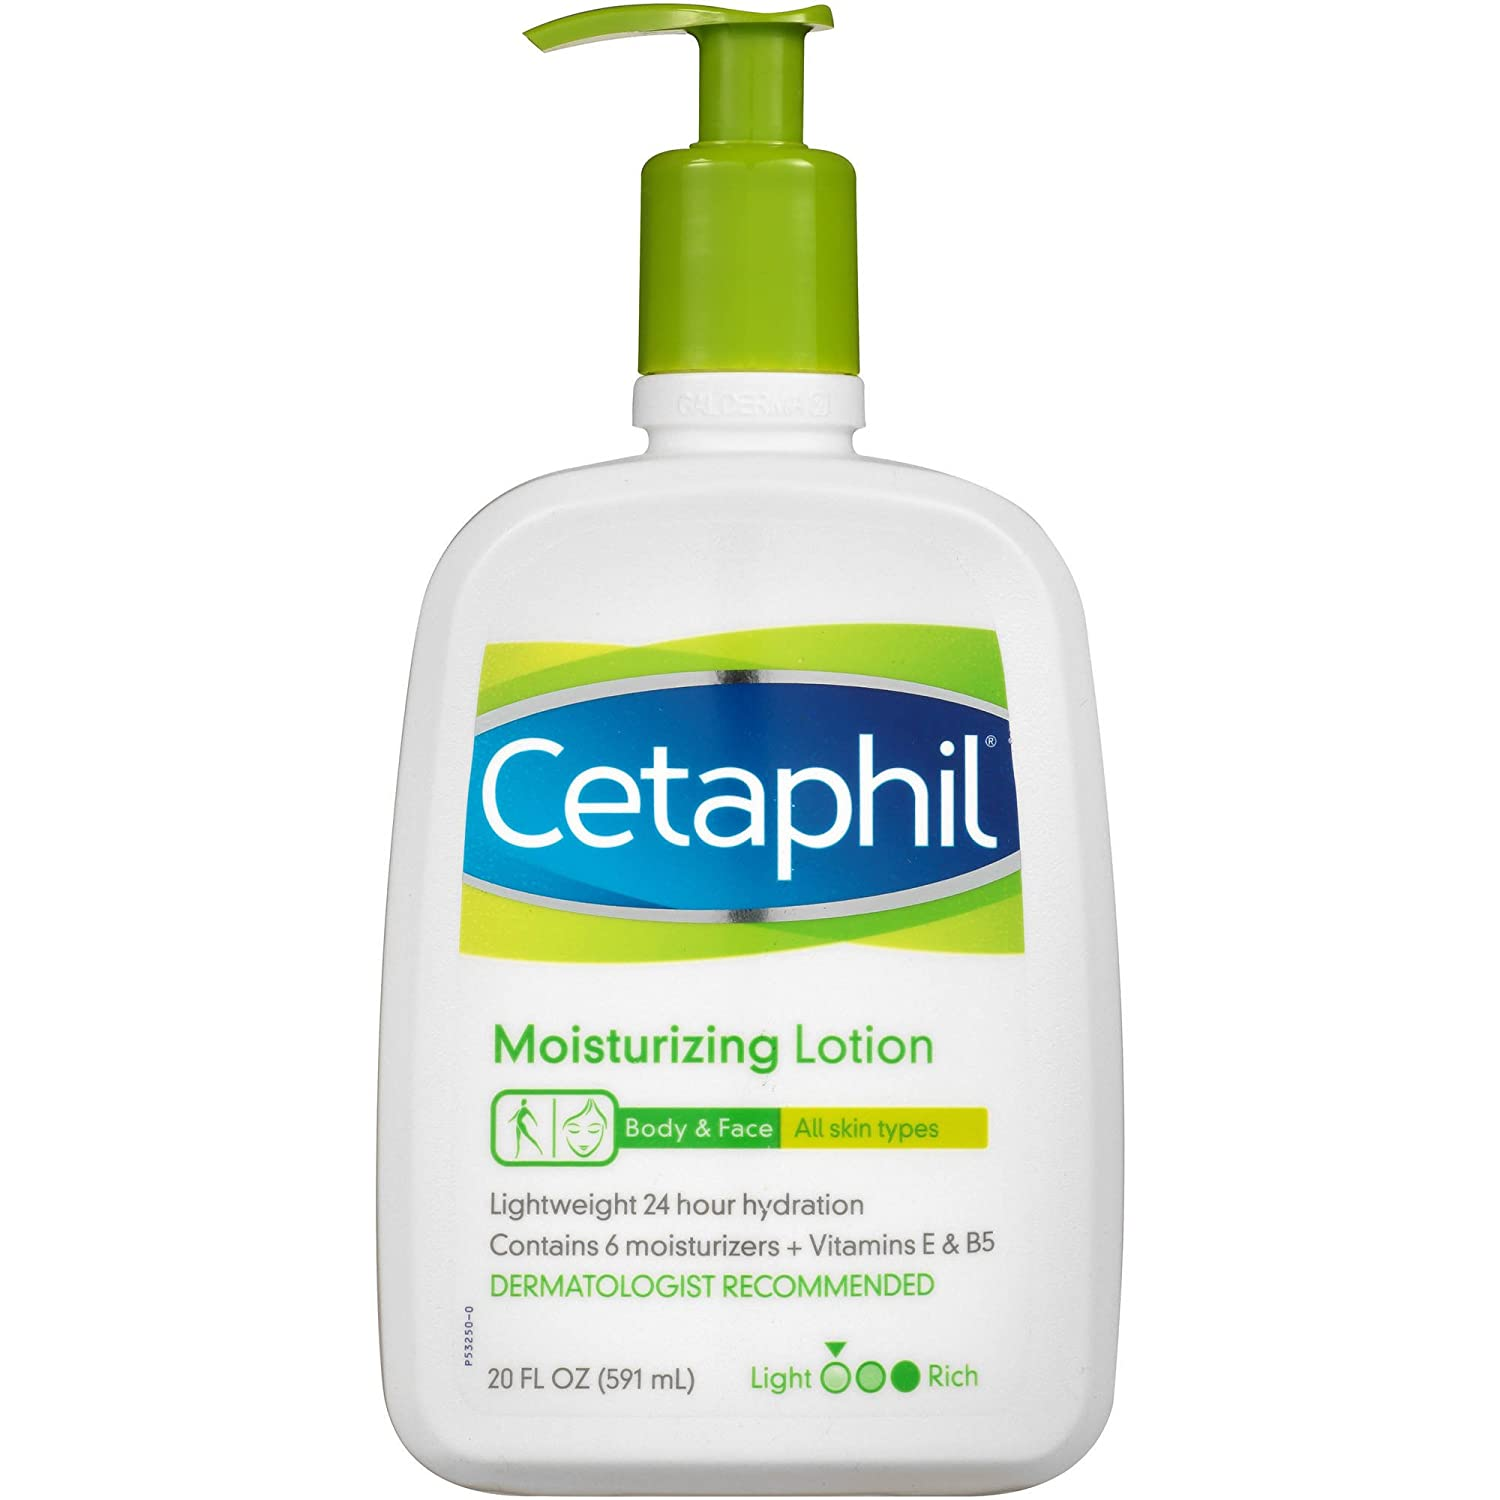 Cetaphil Moisturizing Lotion 591ml For Face and Body All Skin Types